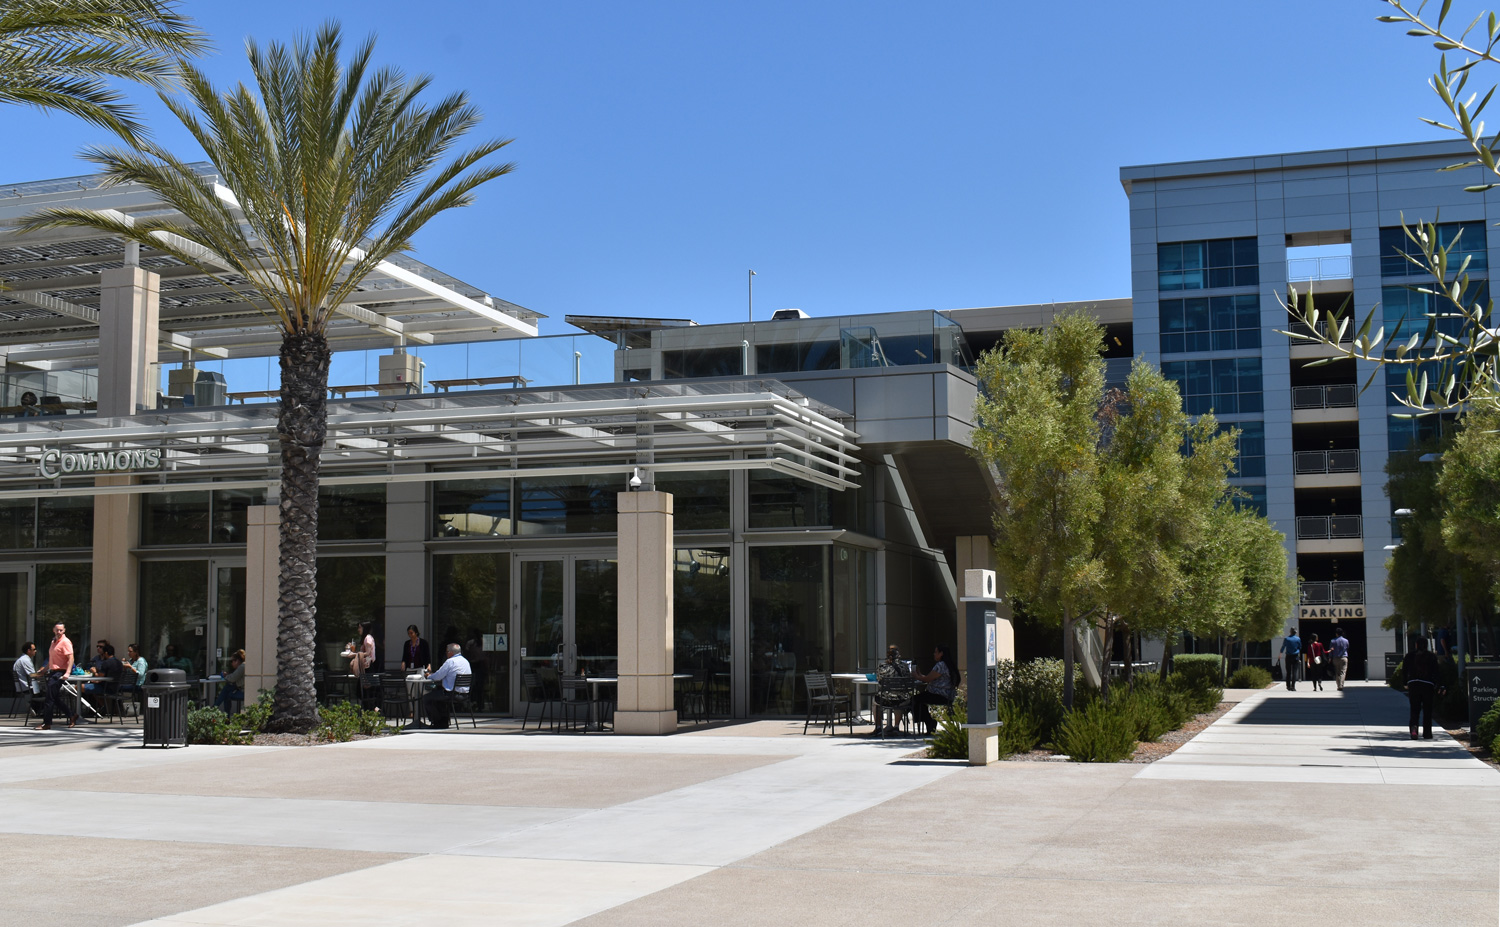 The meetings will be held in the Campus Center Chambers, within the building seen to the left. The parking structure is seen on the right.